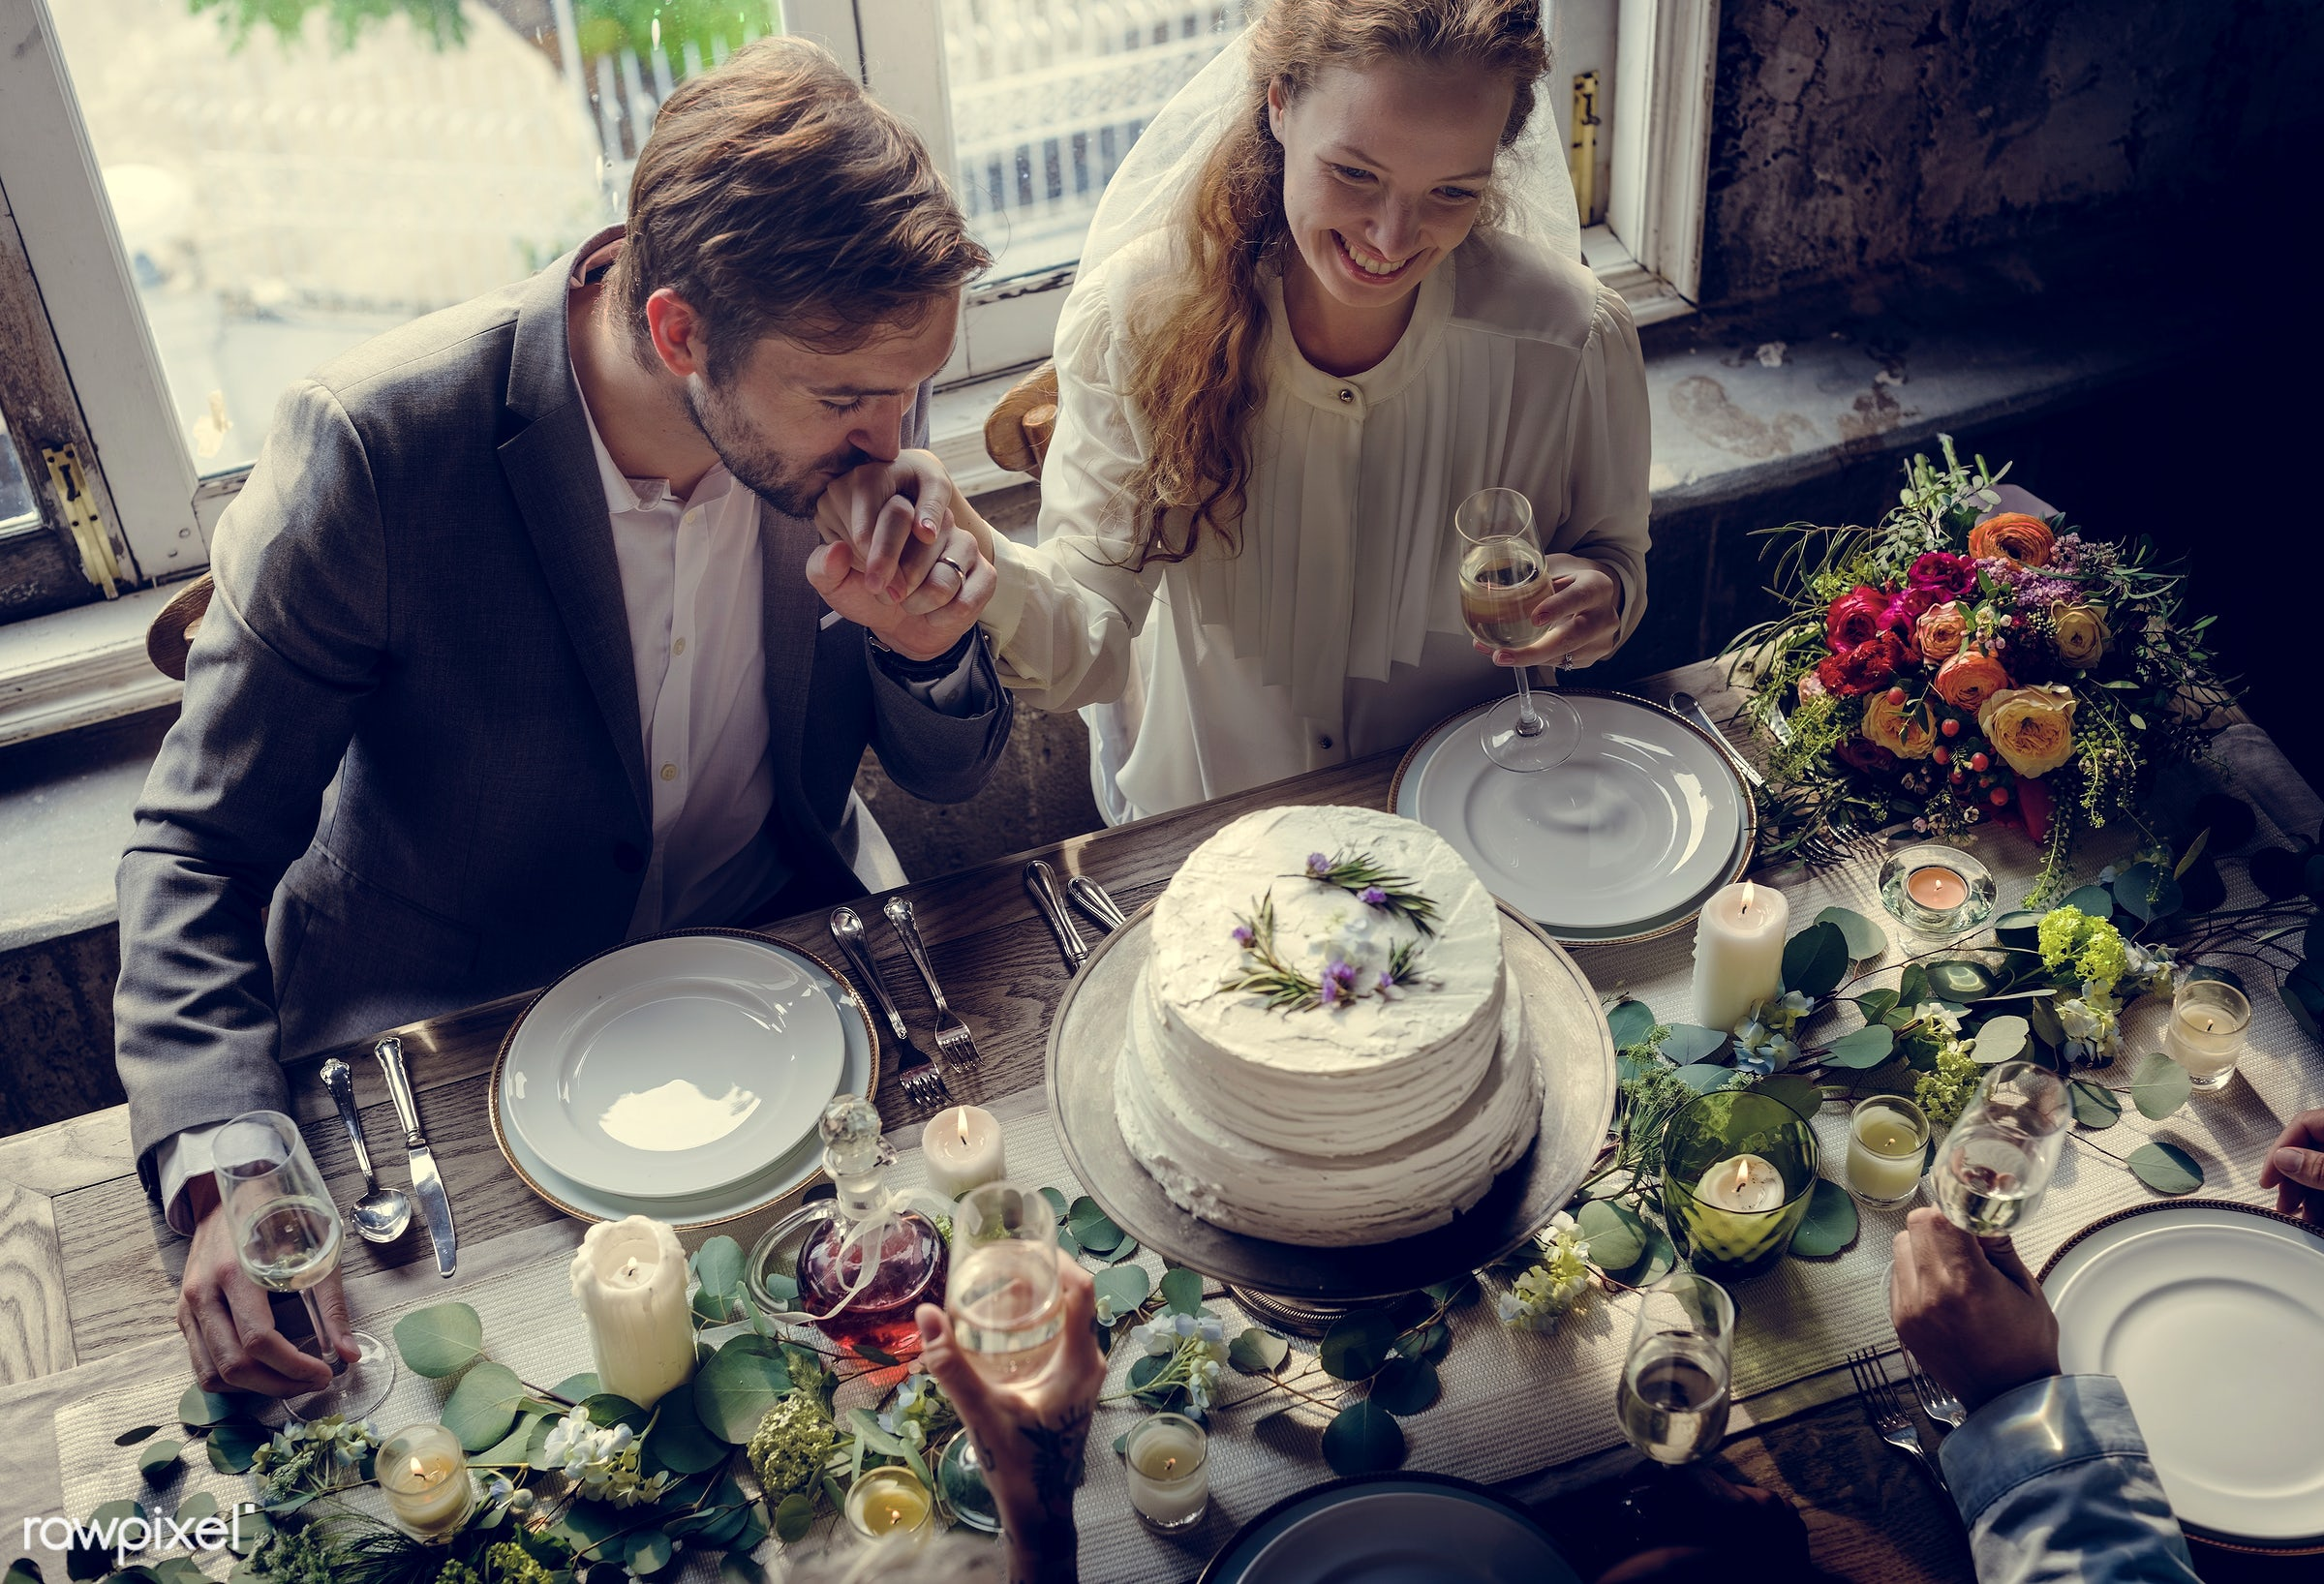 expression, person, people, together, love, kiss, married, woman, gather, drink, flowers, wine, cake, kissing, happiness,...